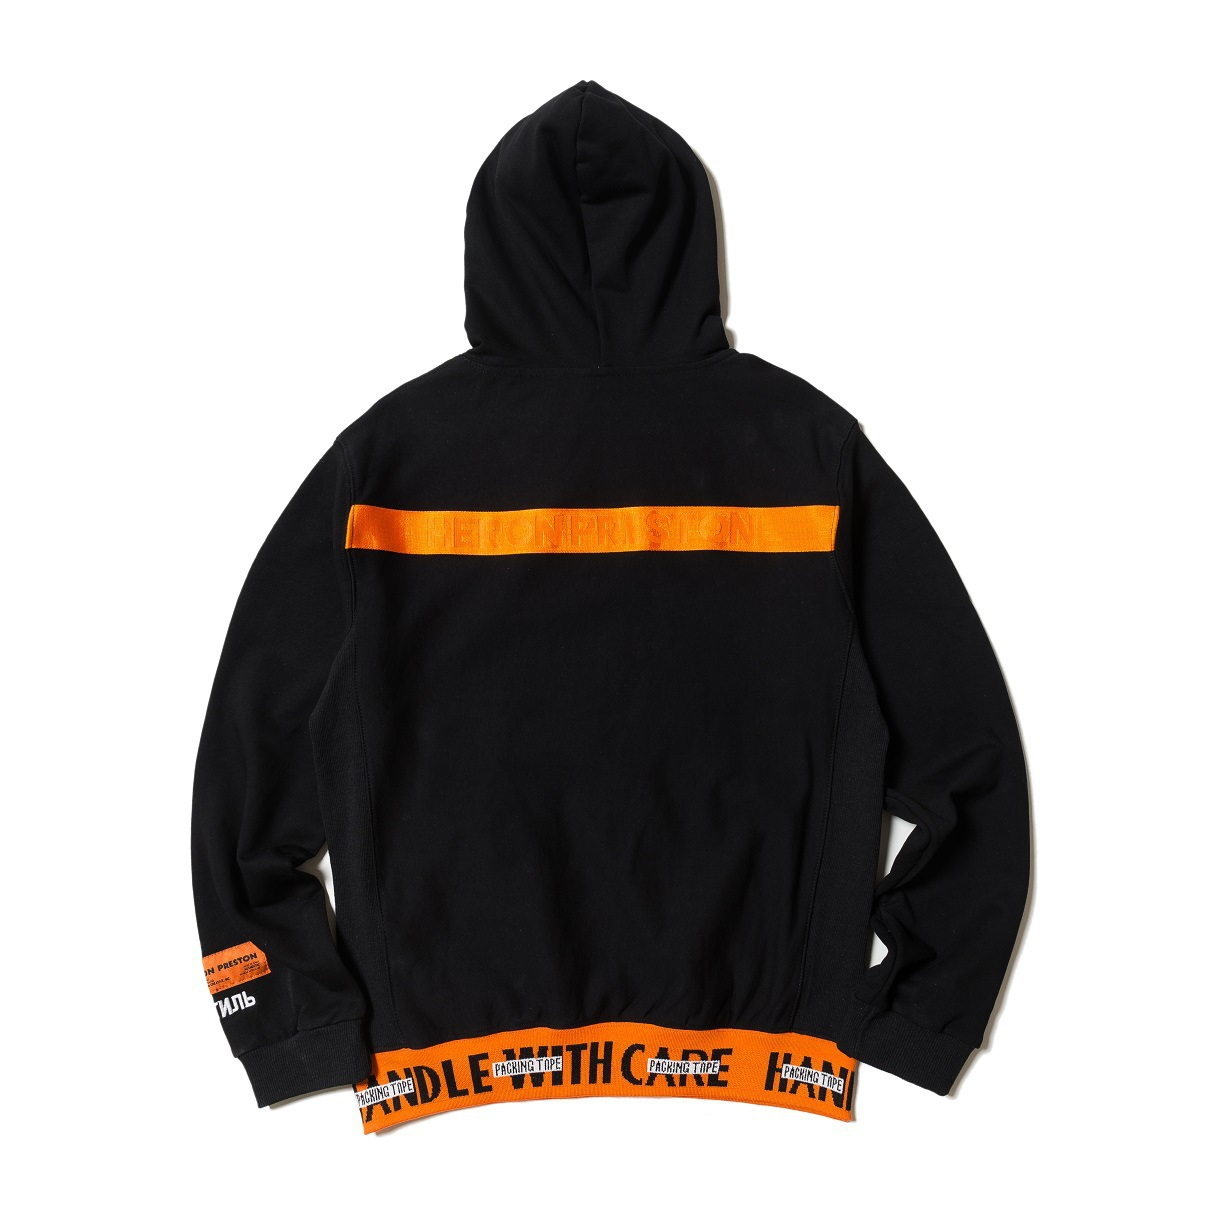 HP Black Orange High Quality Terry Lettered Joint Hem Hoodie Men And Women Couples Loose-Fit Celebrity Style Hoodie